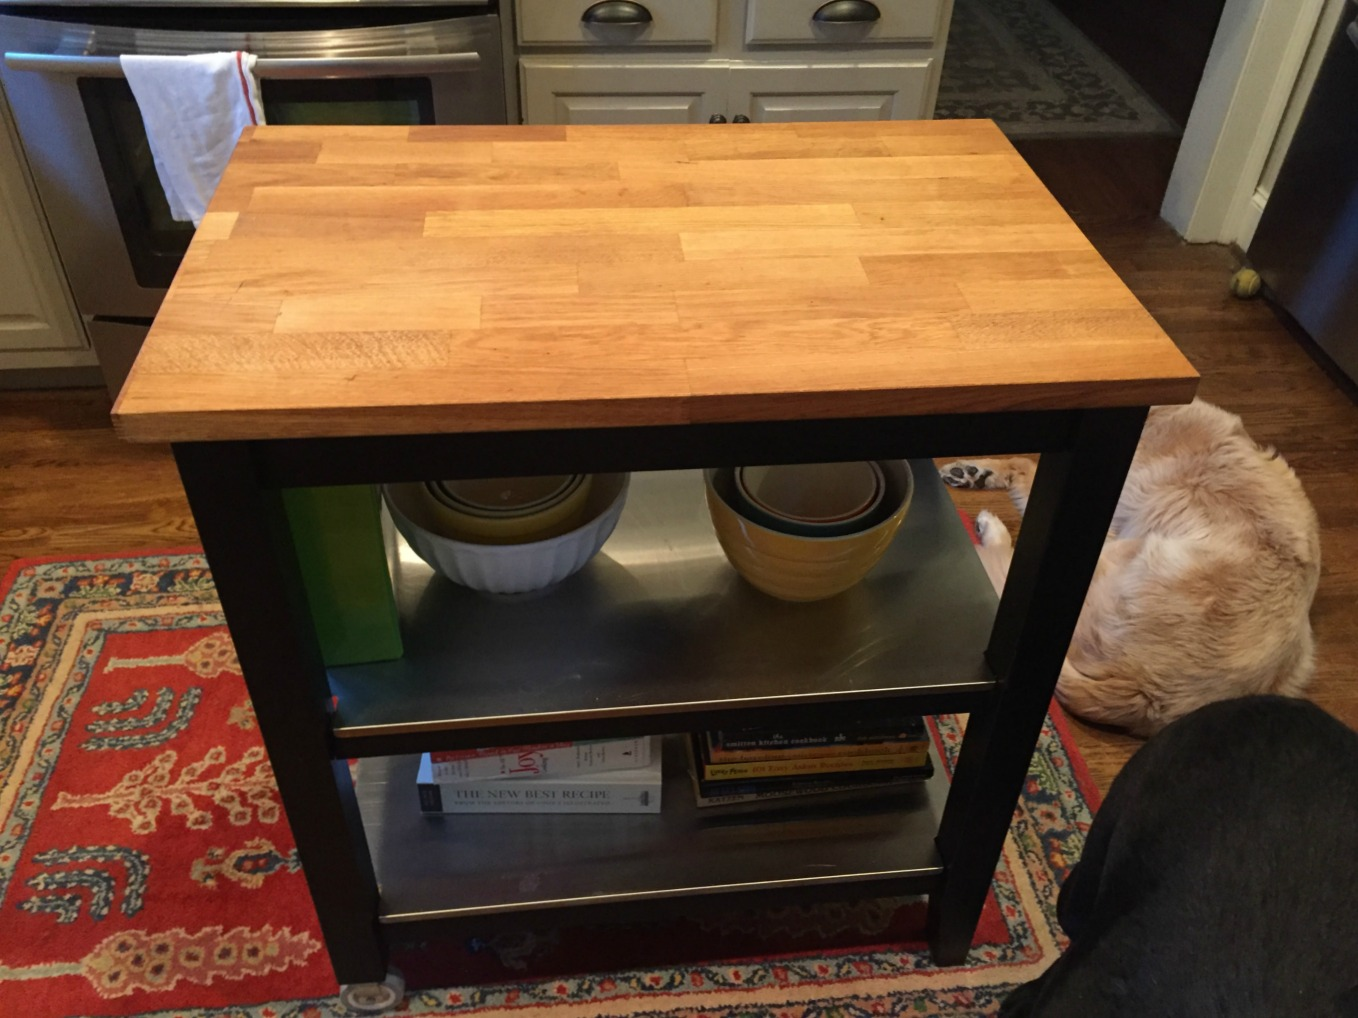 How to revive old butcher block - thediybungalow.com